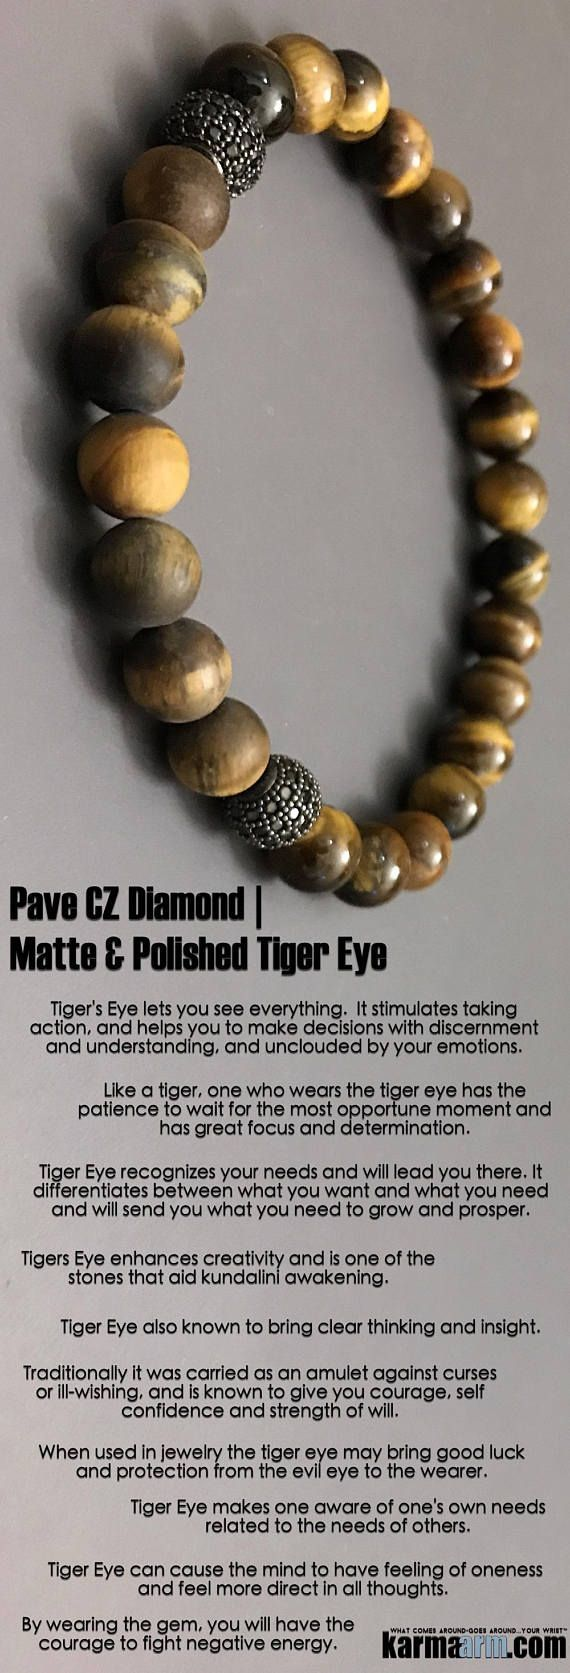 When used in jewelry #tigers eye may bring good luck and protection from the #evil #eye to the wearer. ♛ #BEADED #Yoga #BRACELETS #Mens #Good #Luck #womens #Jewelry #Fertility #Eckhart #Tolle #CrystalsEnergy #gifts #Chakra #reiki #Healing #Kundalini #Law #Attraction #LOA #Love #Mantra #Mala #Meditation #prayer #mindfulness #wisdom #CrystalEnergy #Spiritual #Gifts #ValentinesDay #Valentine #Valentines #Mommy #Blog #Tony #Robbins #friendship #Stacks #Lucky